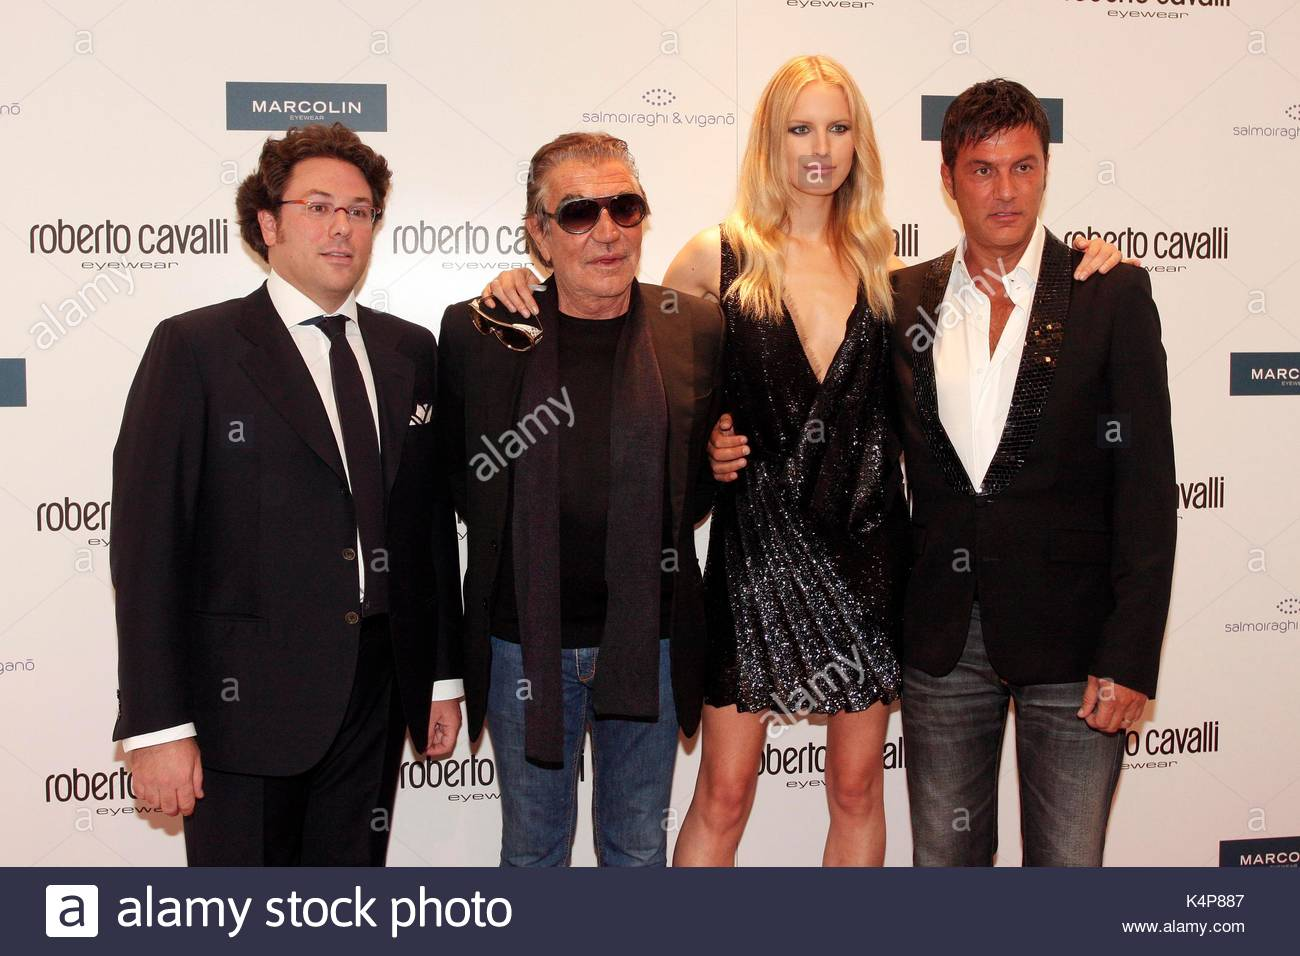 Roberto Cavalli And Karolina Kurkova Stock Photos & Roberto Cavalli ...